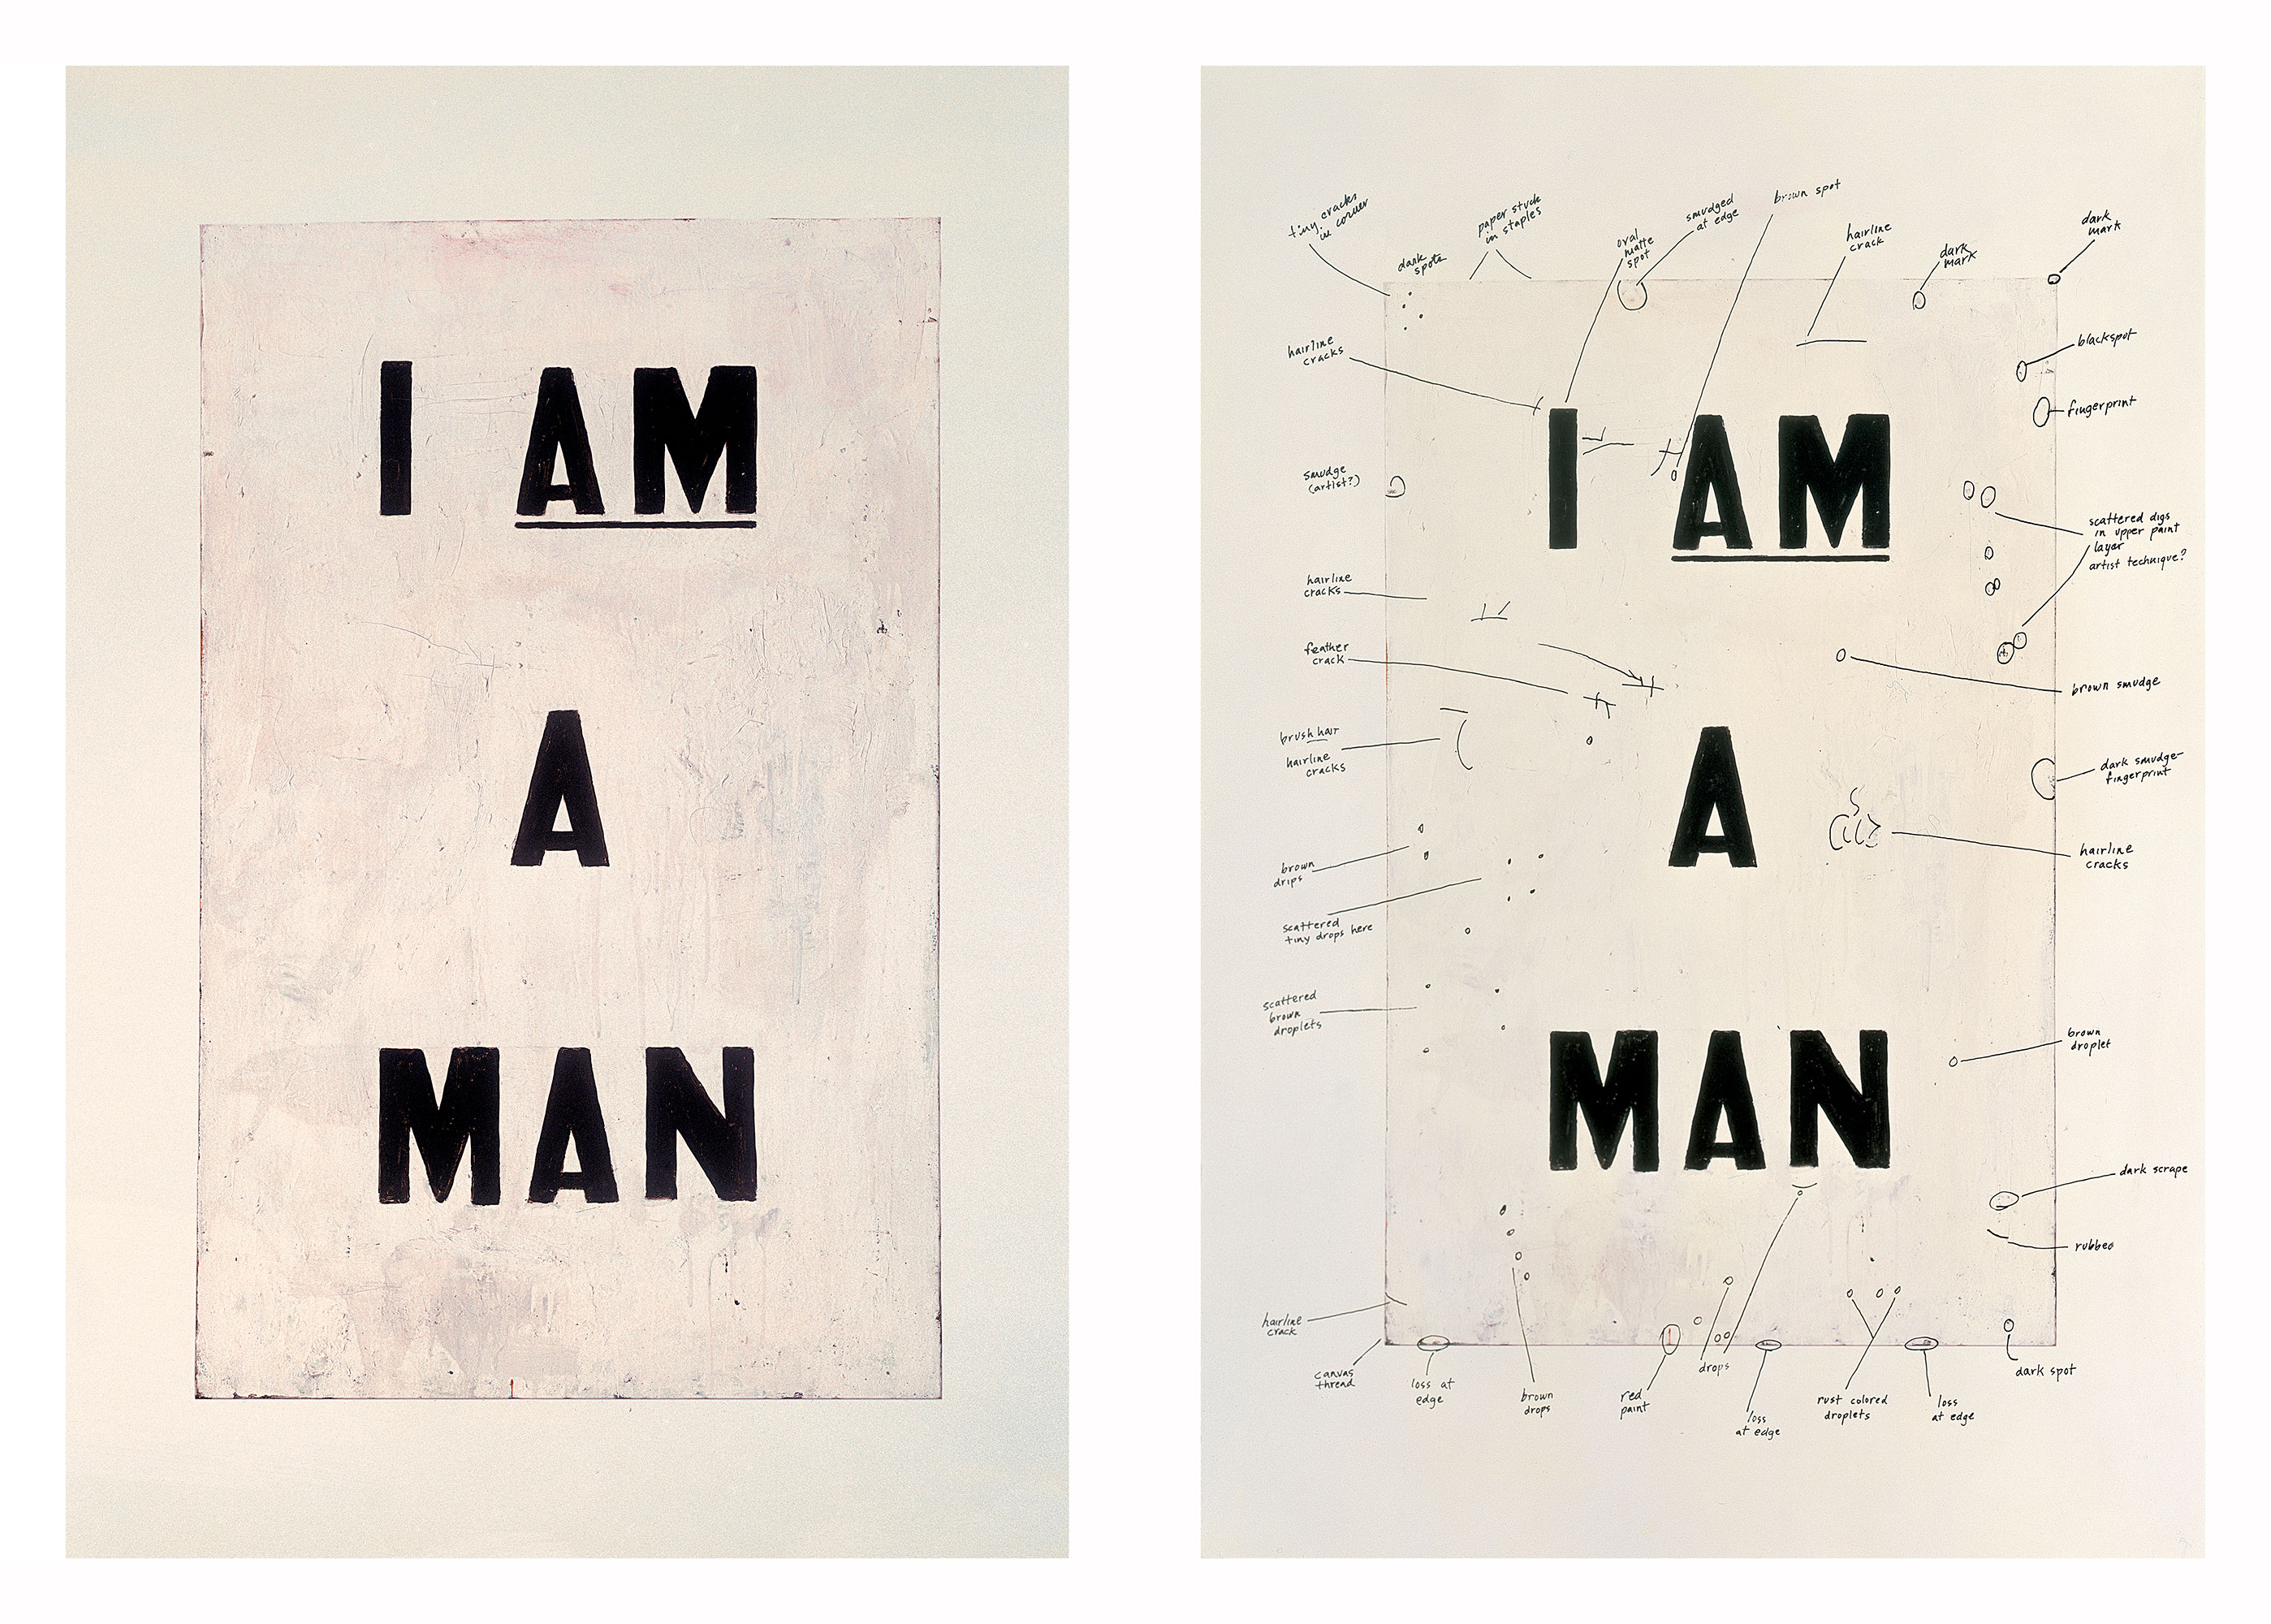 Condition Report, by Glenn Ligon, 2000